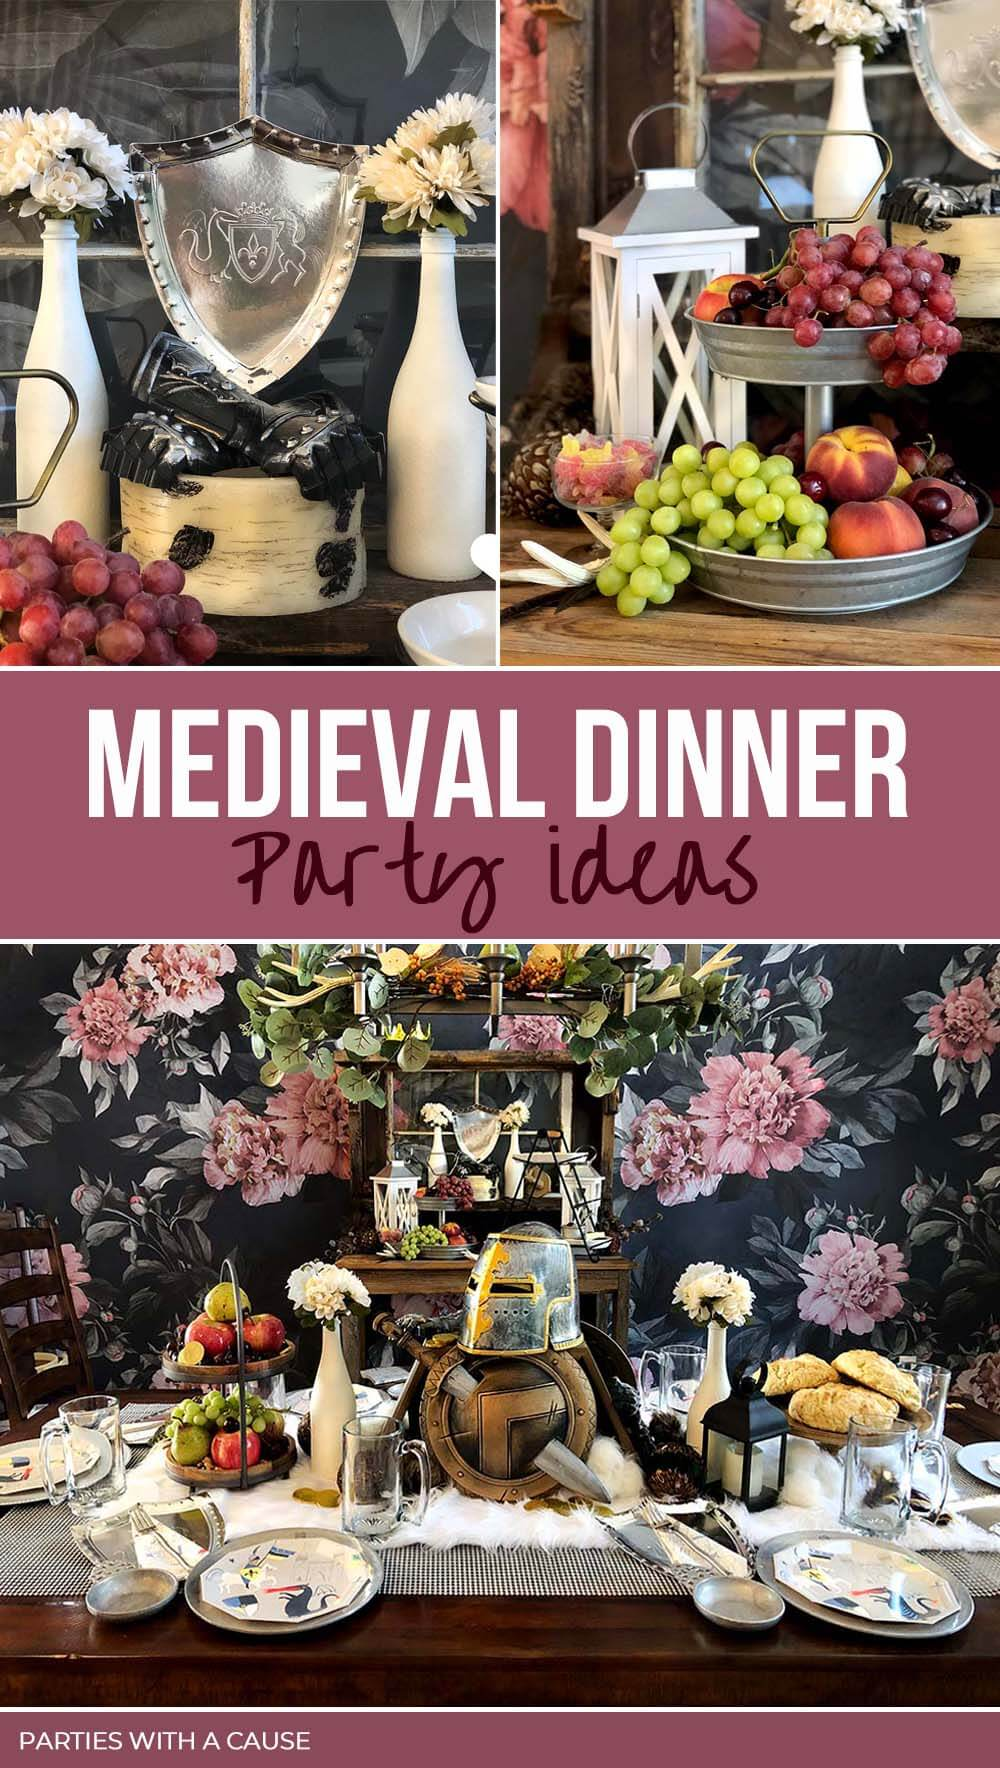 Medieval Dinner party ideas by Salt Lake Party Stylist